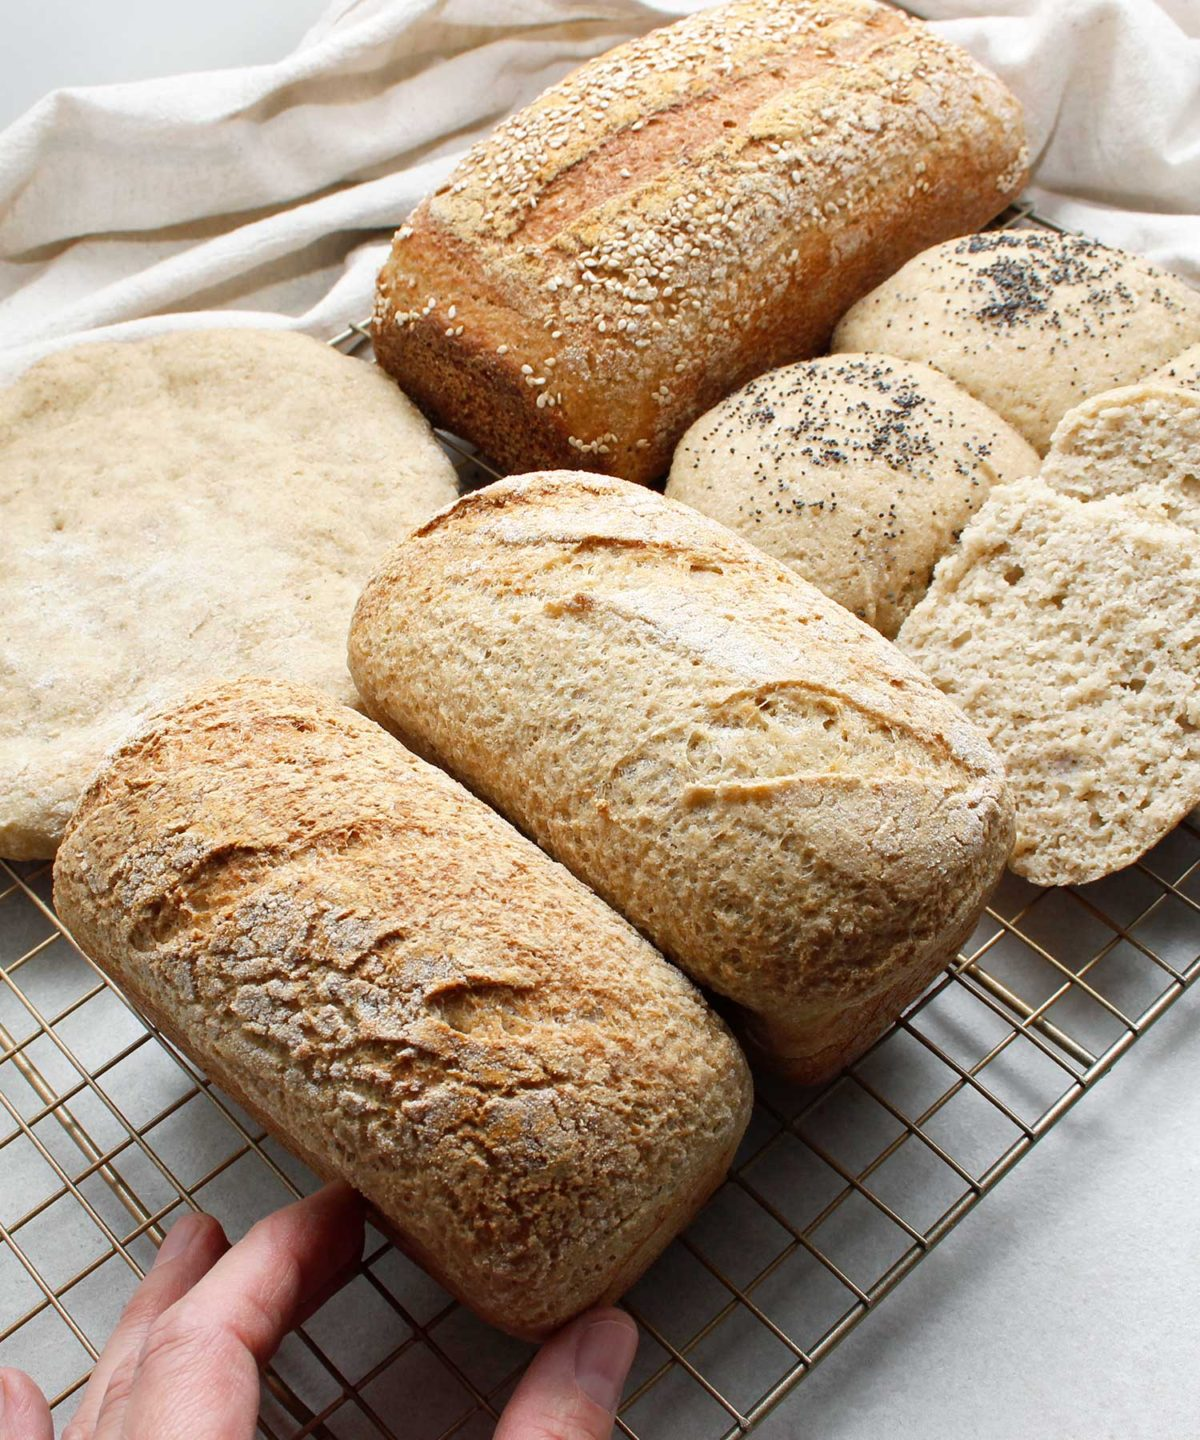 A display of gluten-free vegan bread (loaves, rolls, pizza crust) all prepared with one yeasted dough.